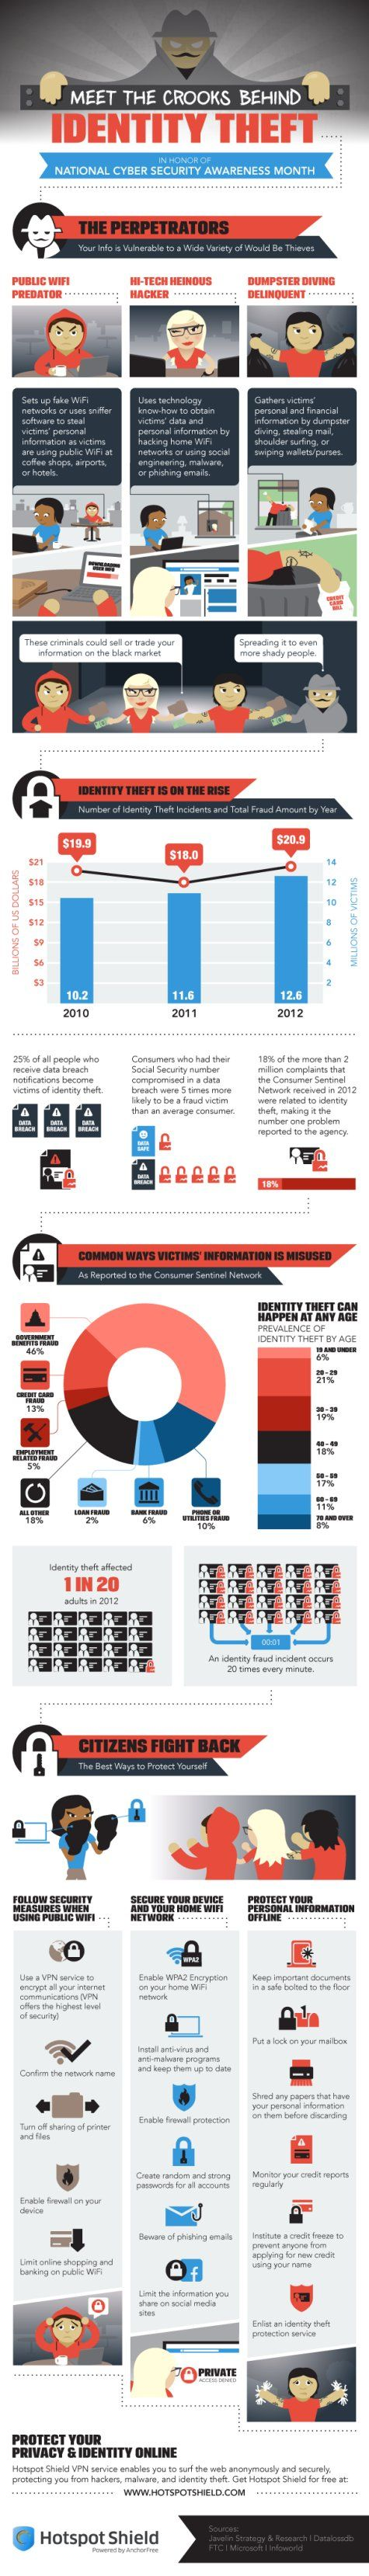 AnchorSecurity Infographic on Identity Theft. #IdentityTheft #Infographic